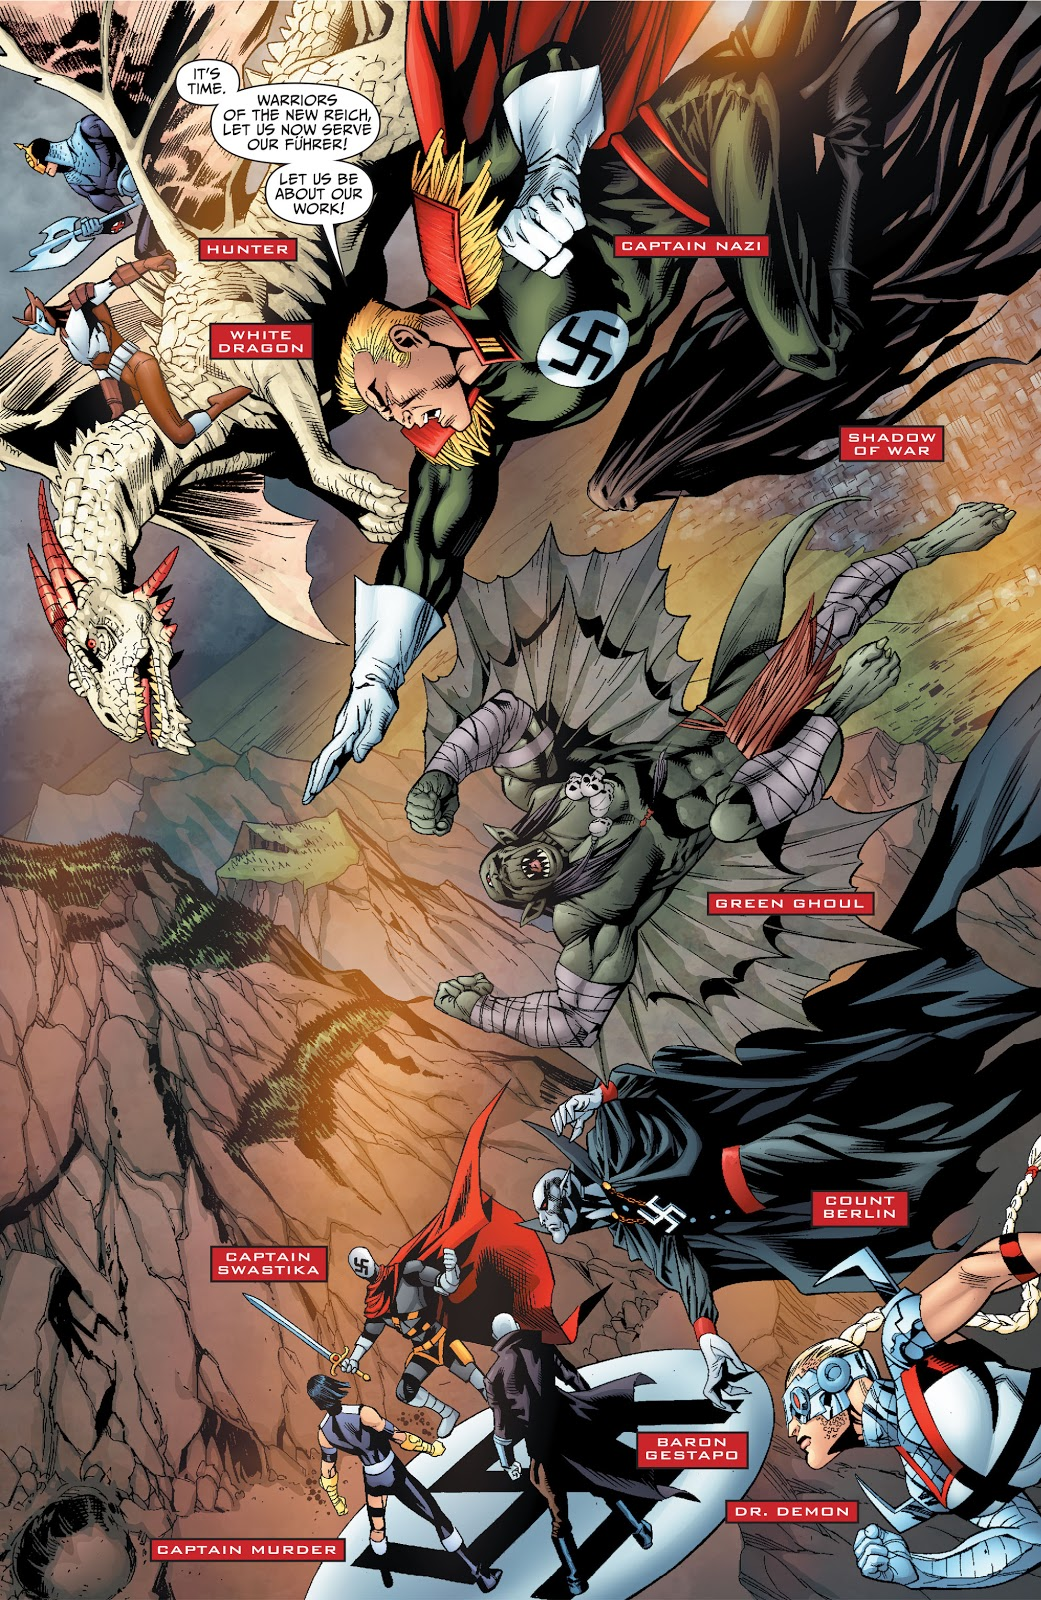 Justice Society of America Axis of Evil review